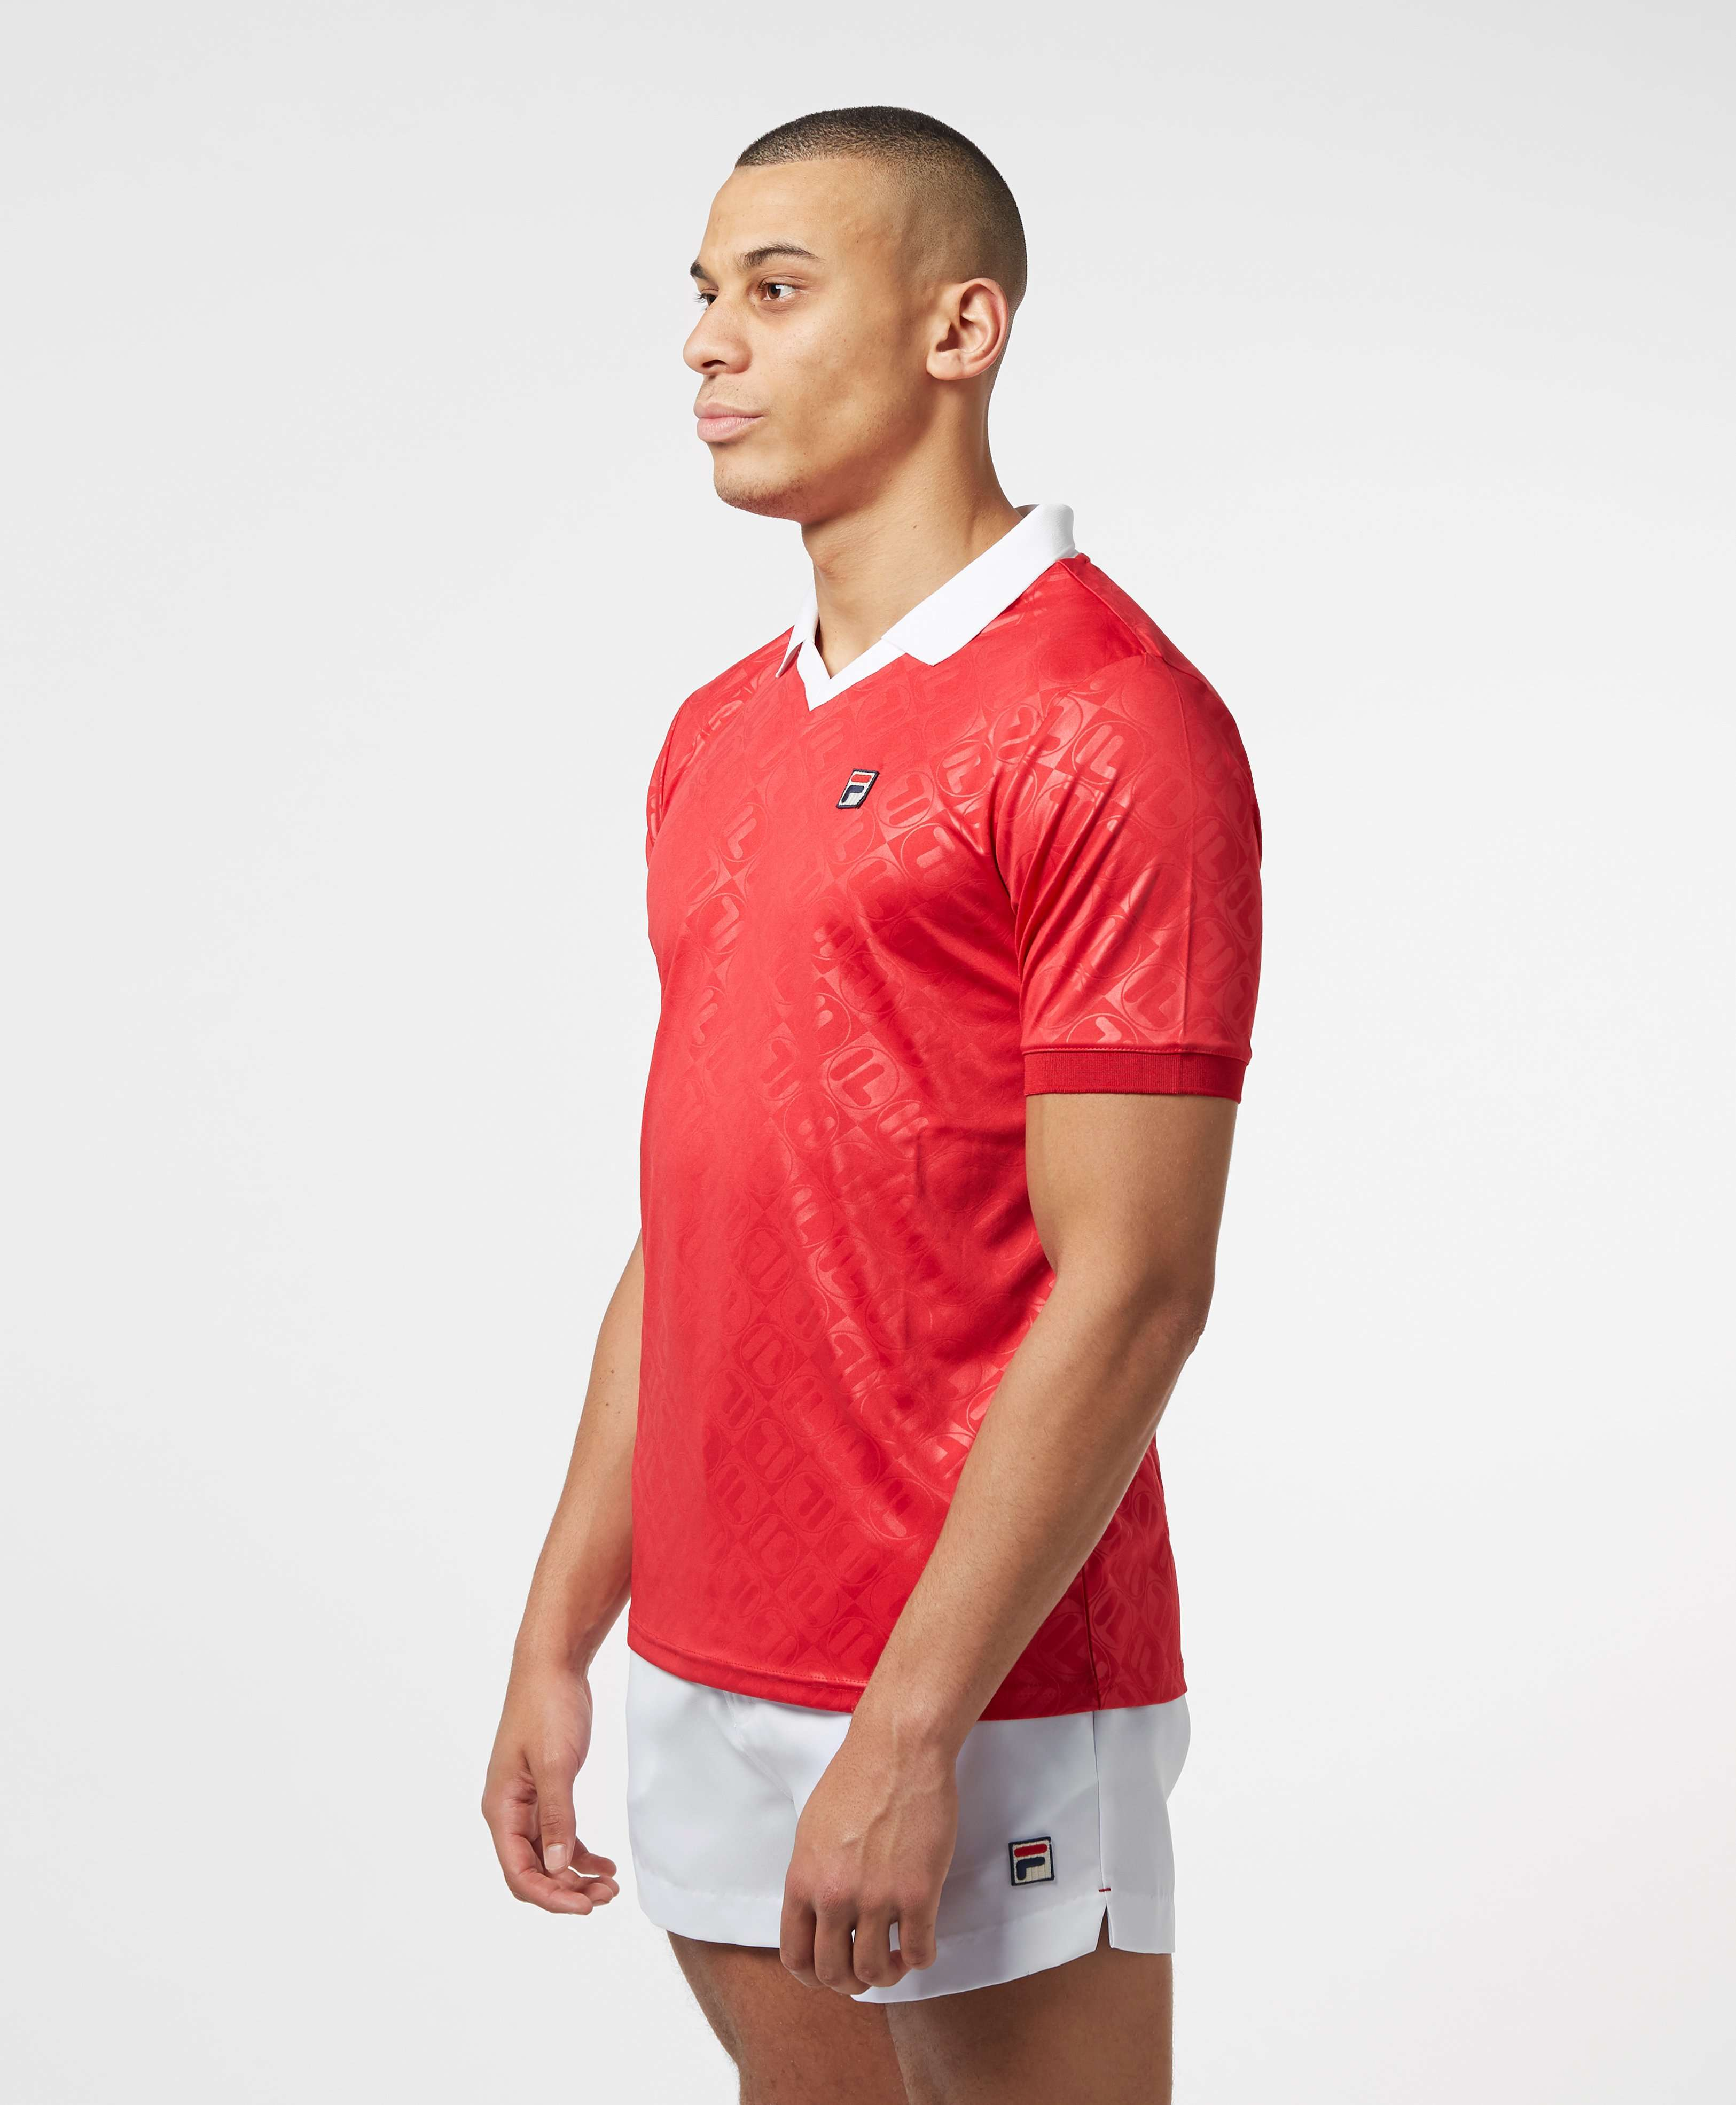 Fila Vintage Football Polo Shirt - Online Exclusive